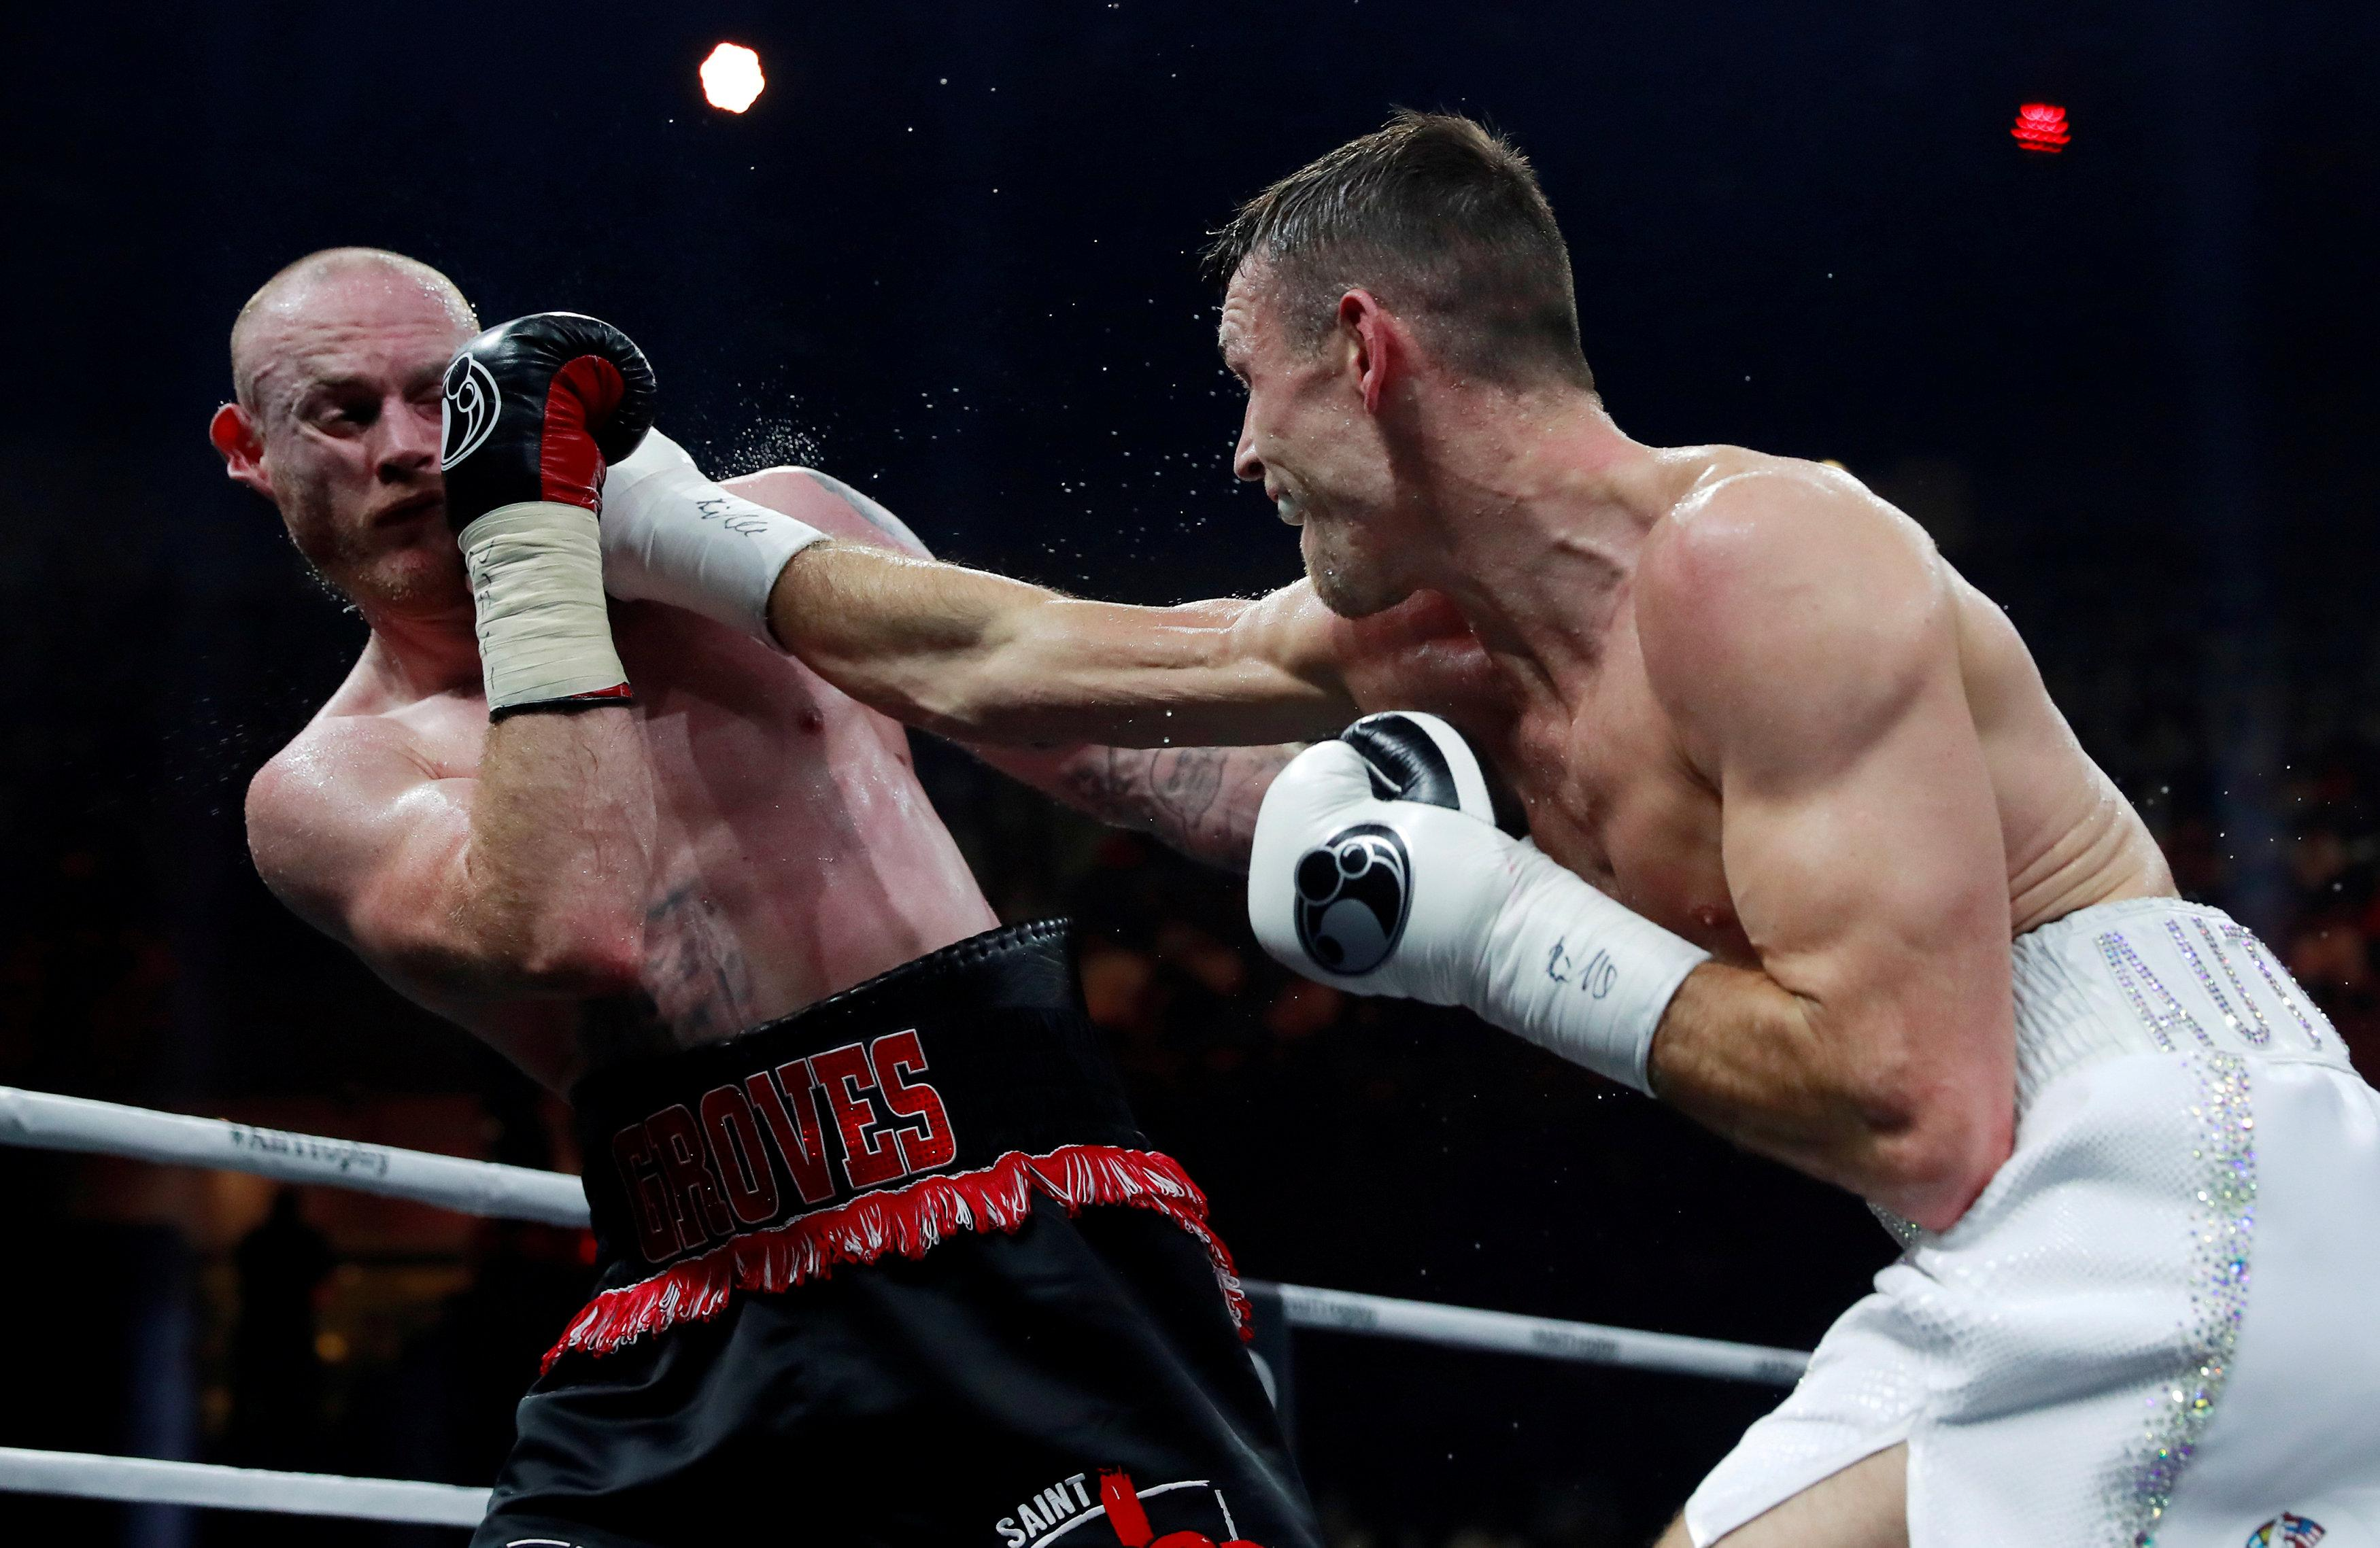 Smith proved to be too strong for Groves in the World Boxing Super Series final